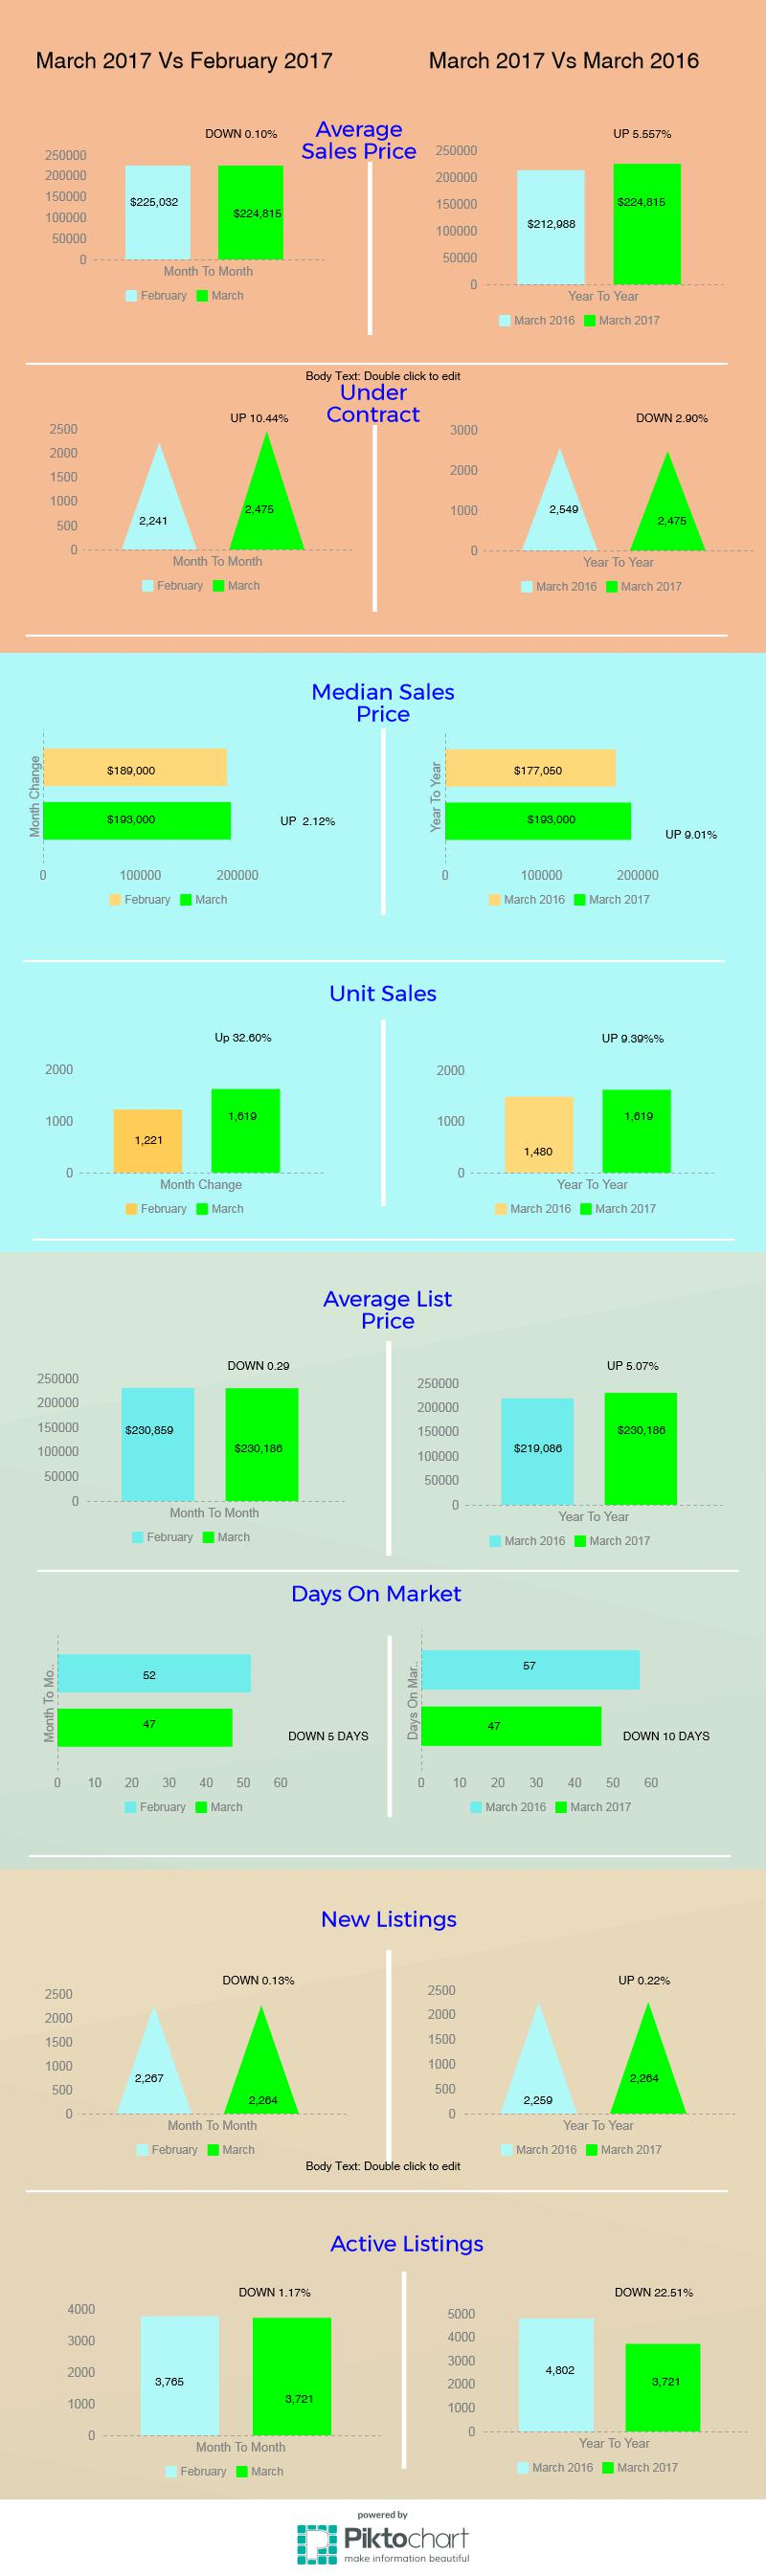 Tucson Housing Market March 2017